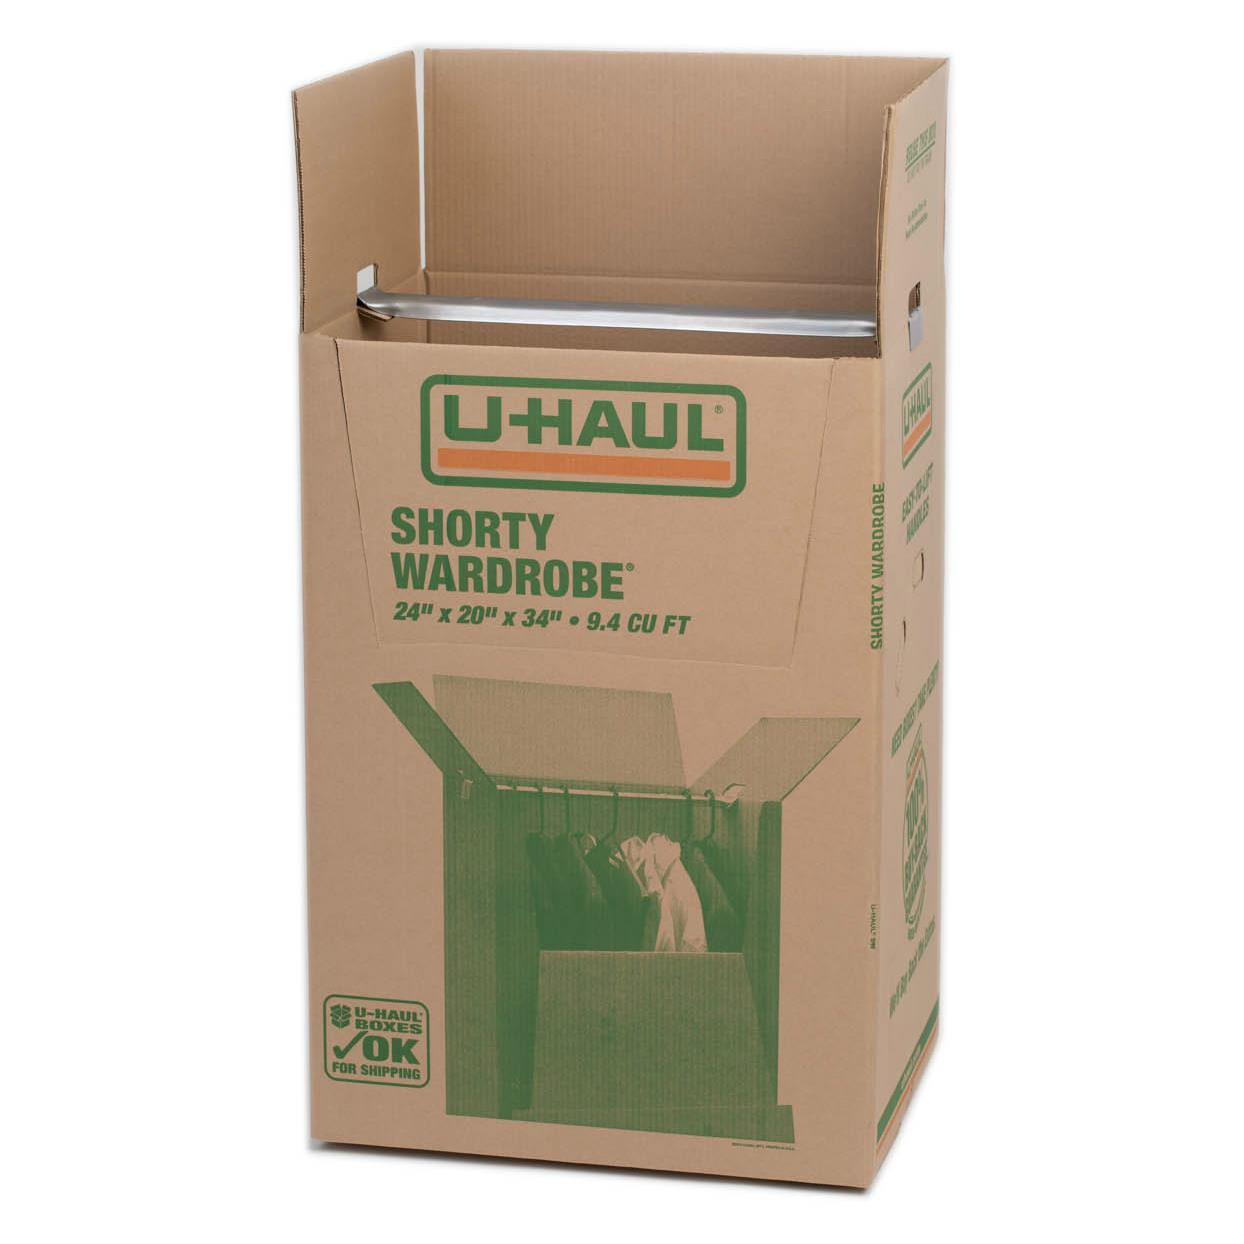 large uk removal wardrobe boxes garment amazon products box office del x dp co